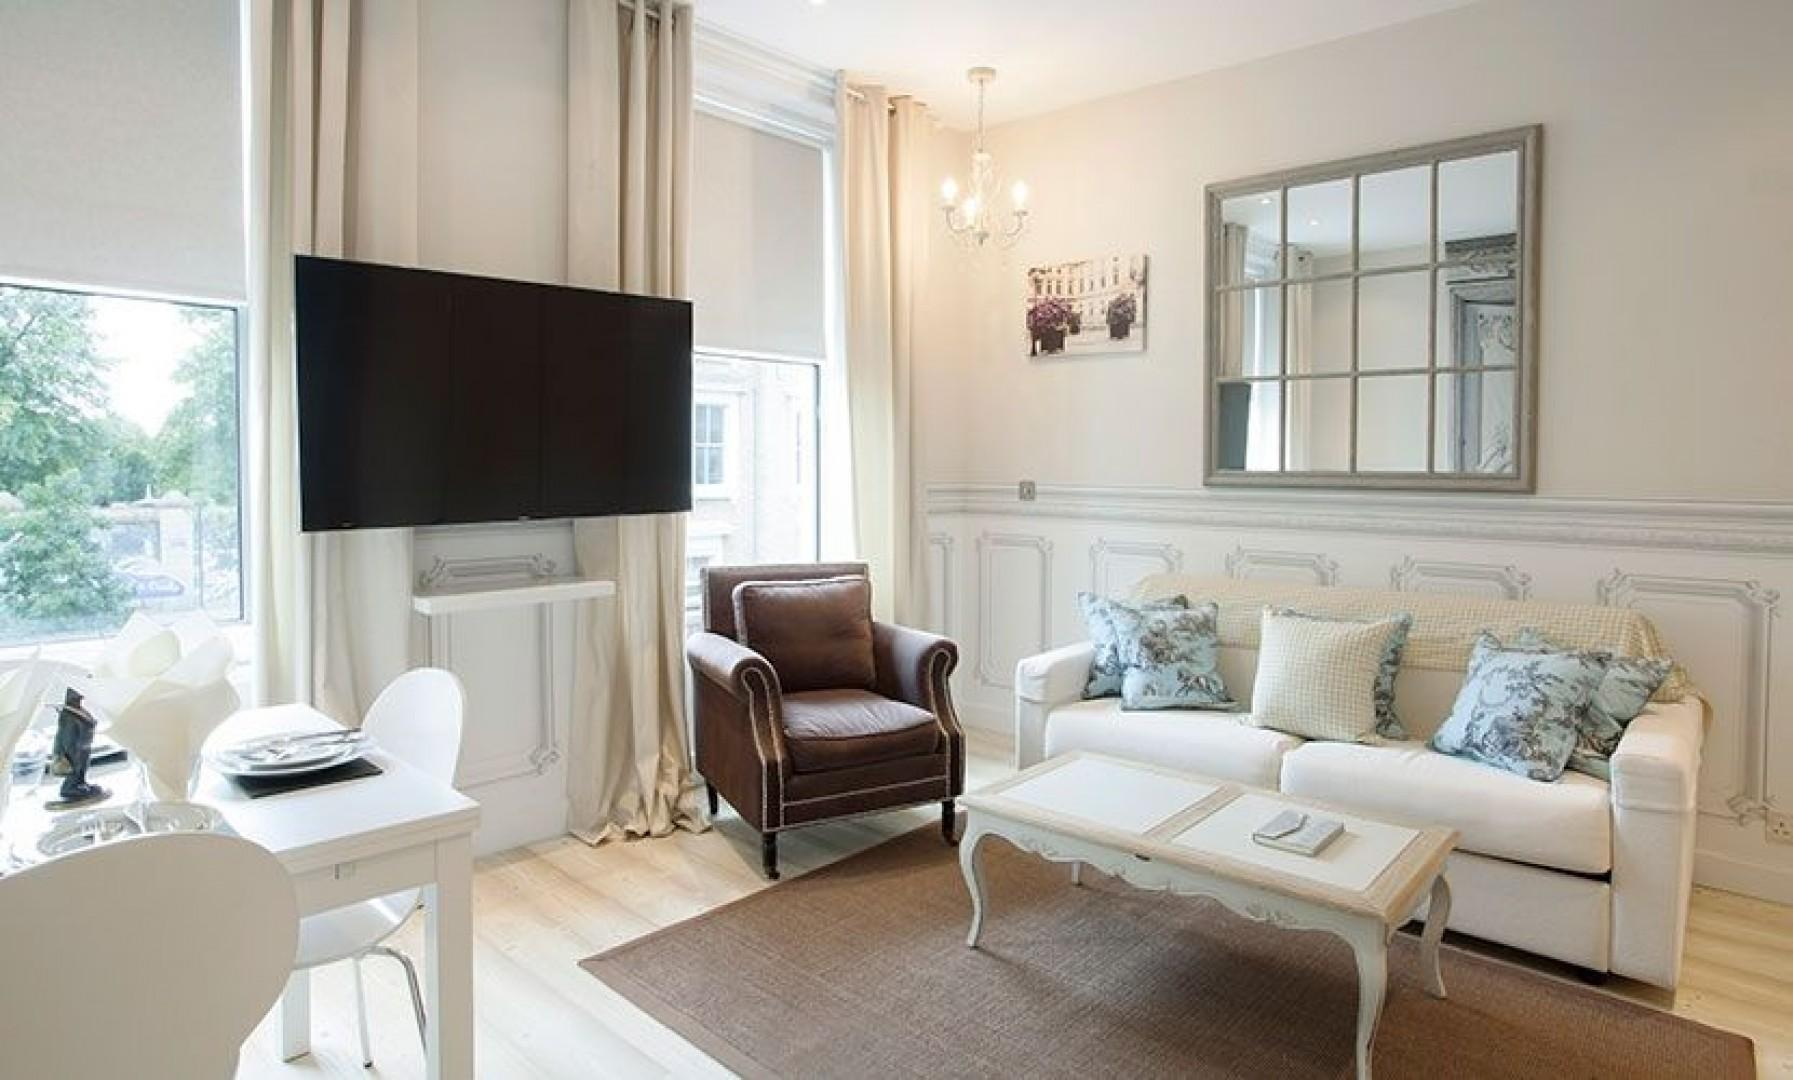 Stylish open plan living with a comfortable sofa that converts into a bed for extra sleeping space